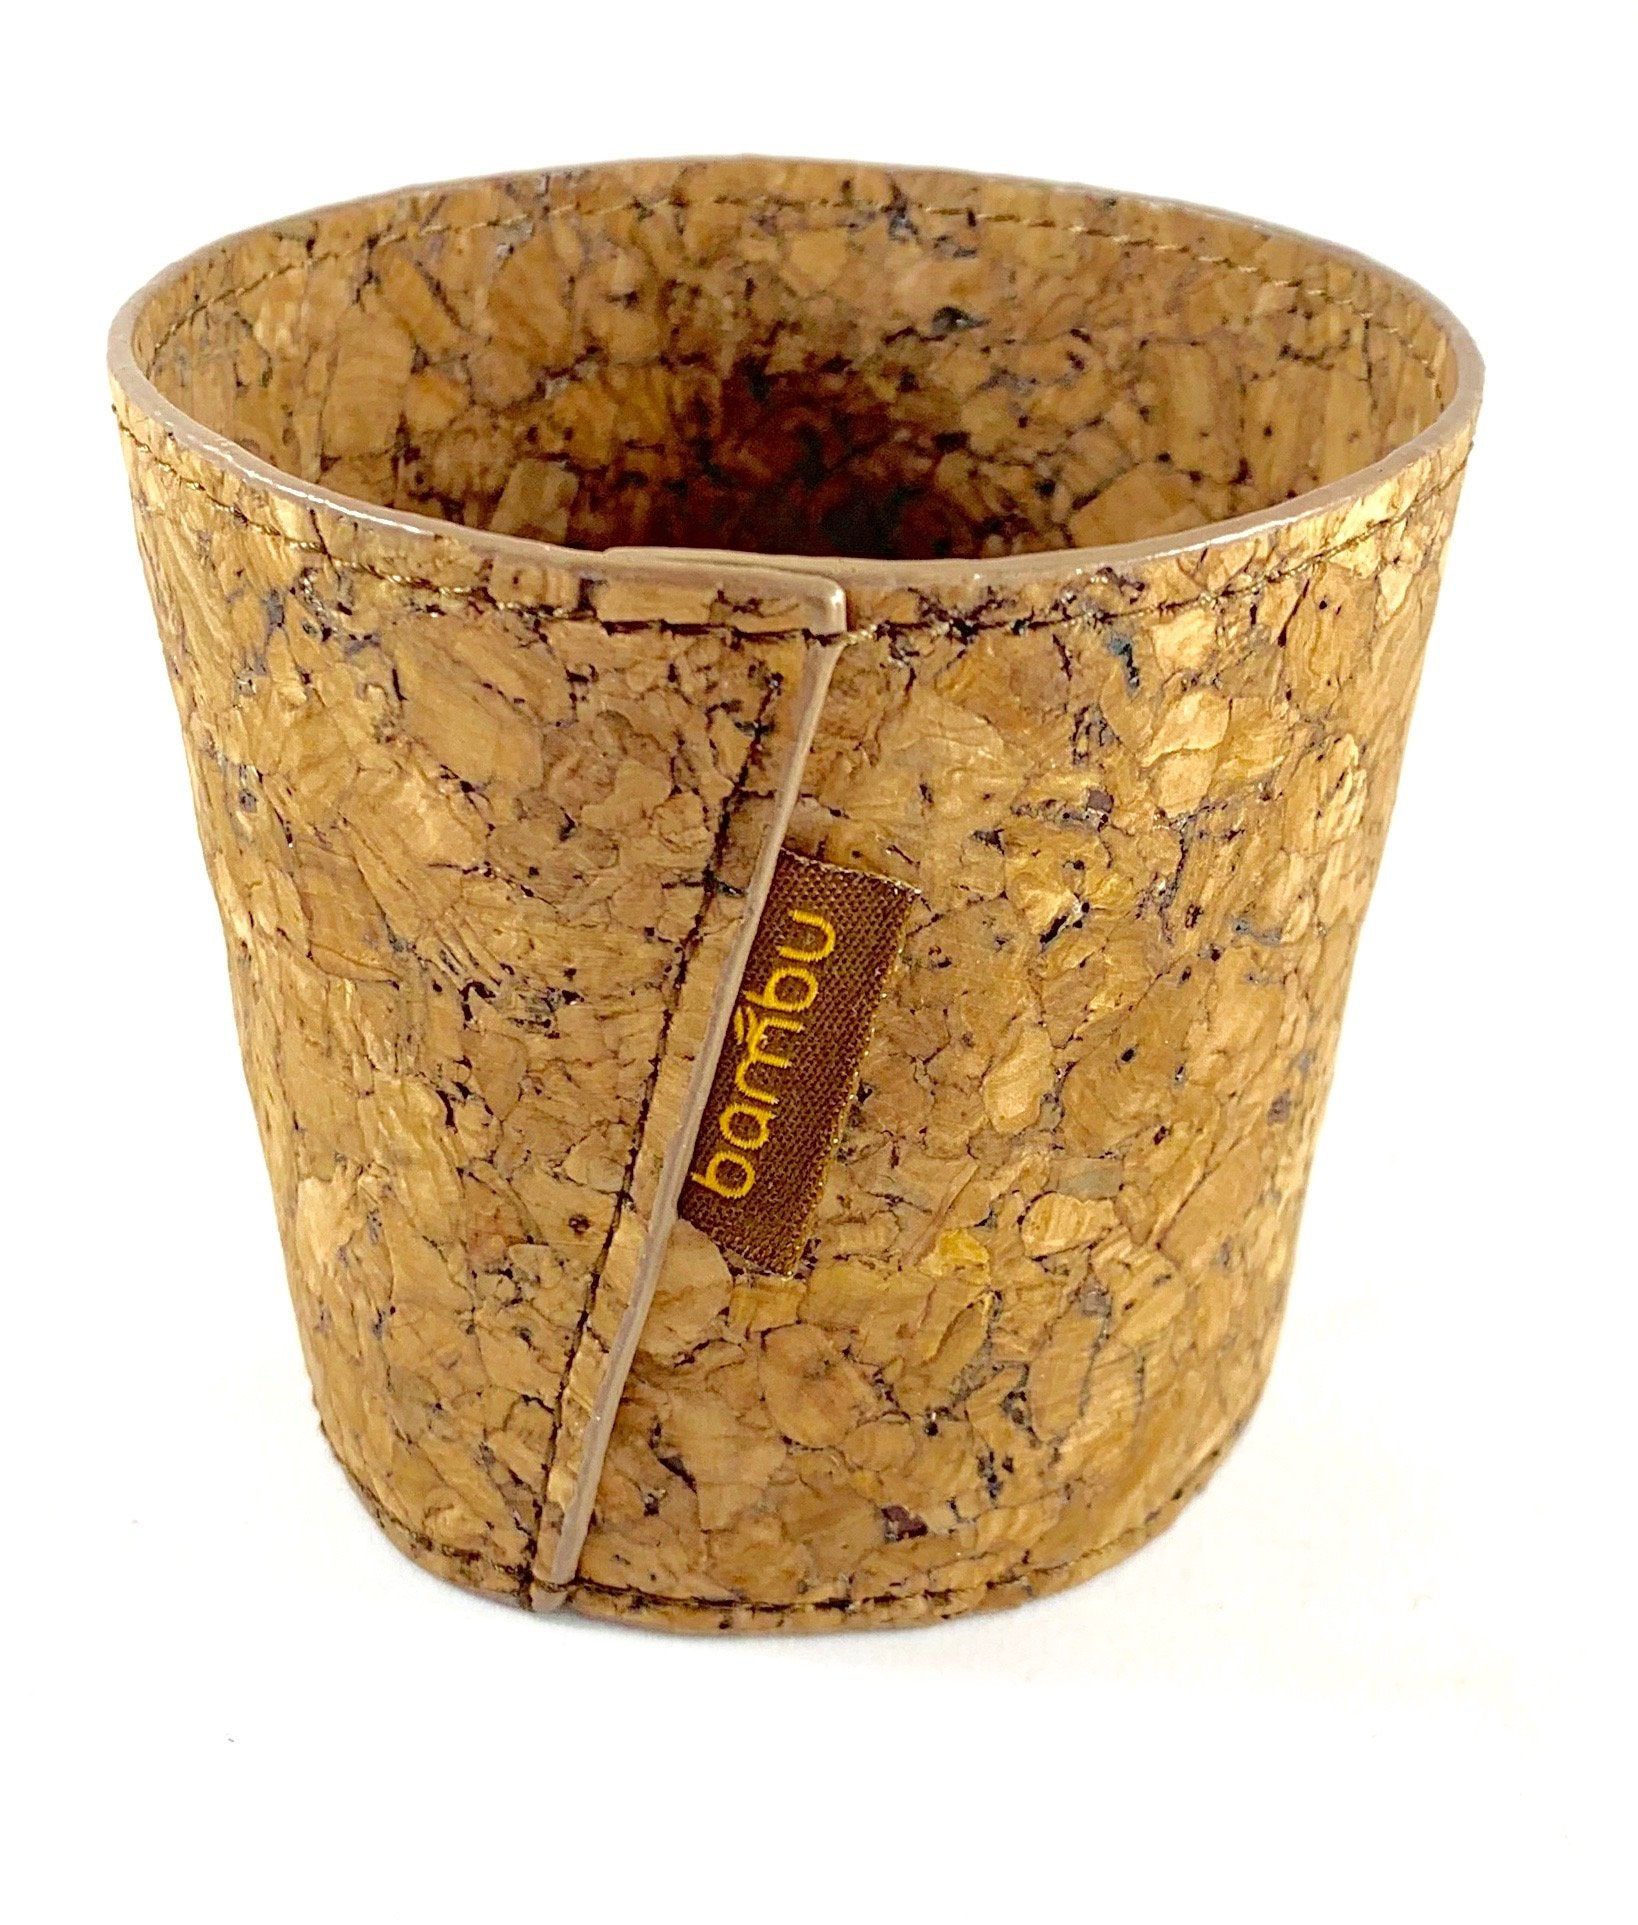 Coffee Sleeves - Cork (last chance, discontinued!!)